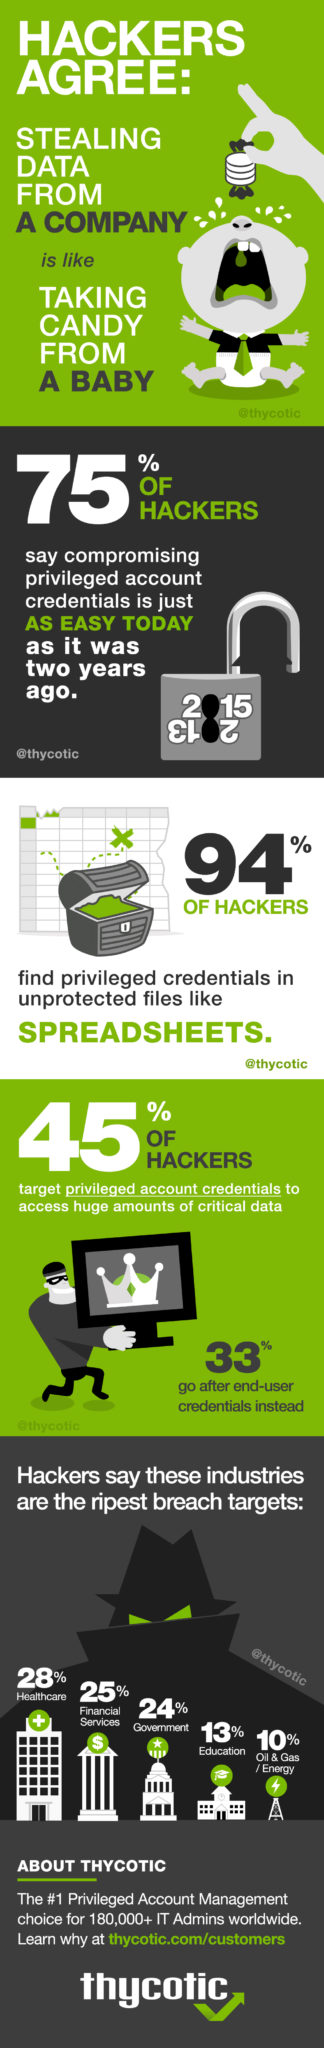 Blackhat 2015 Infographic - Hackers agree, stealing data from a company is like taking candy from a baby